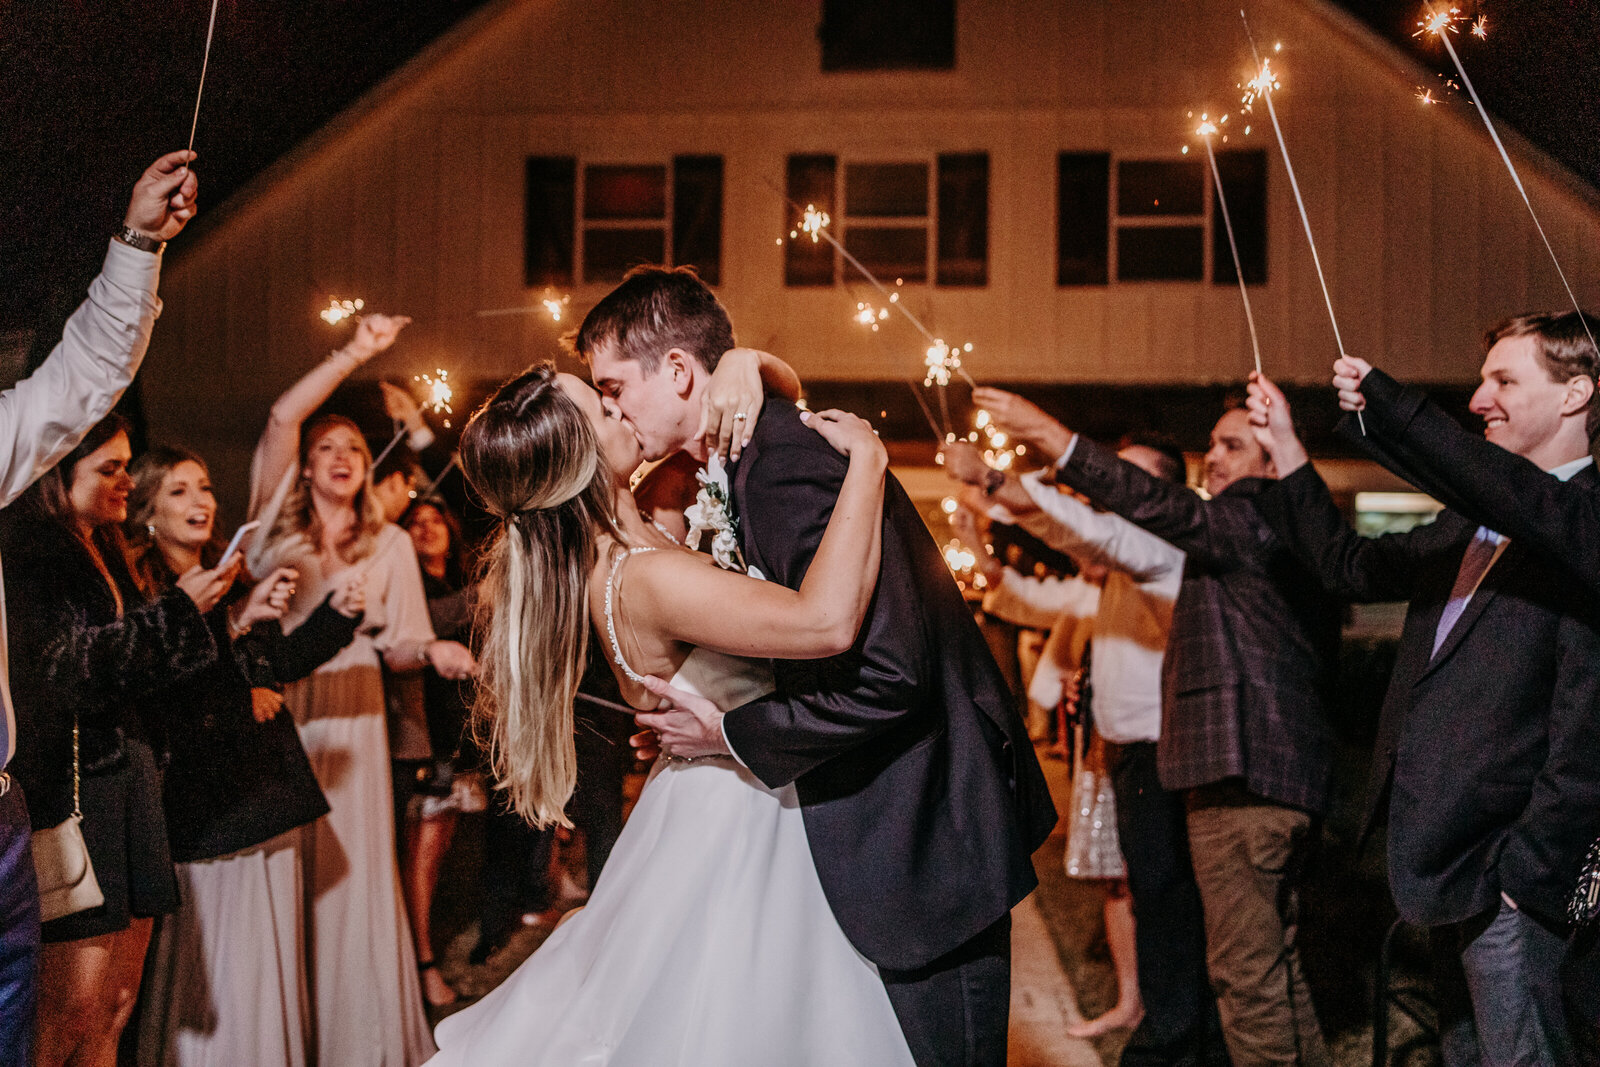 J.Michelle Photography photographs bride and groom leaving during a sparkler exit at vintage oaks farm wedding in Athens, Ga